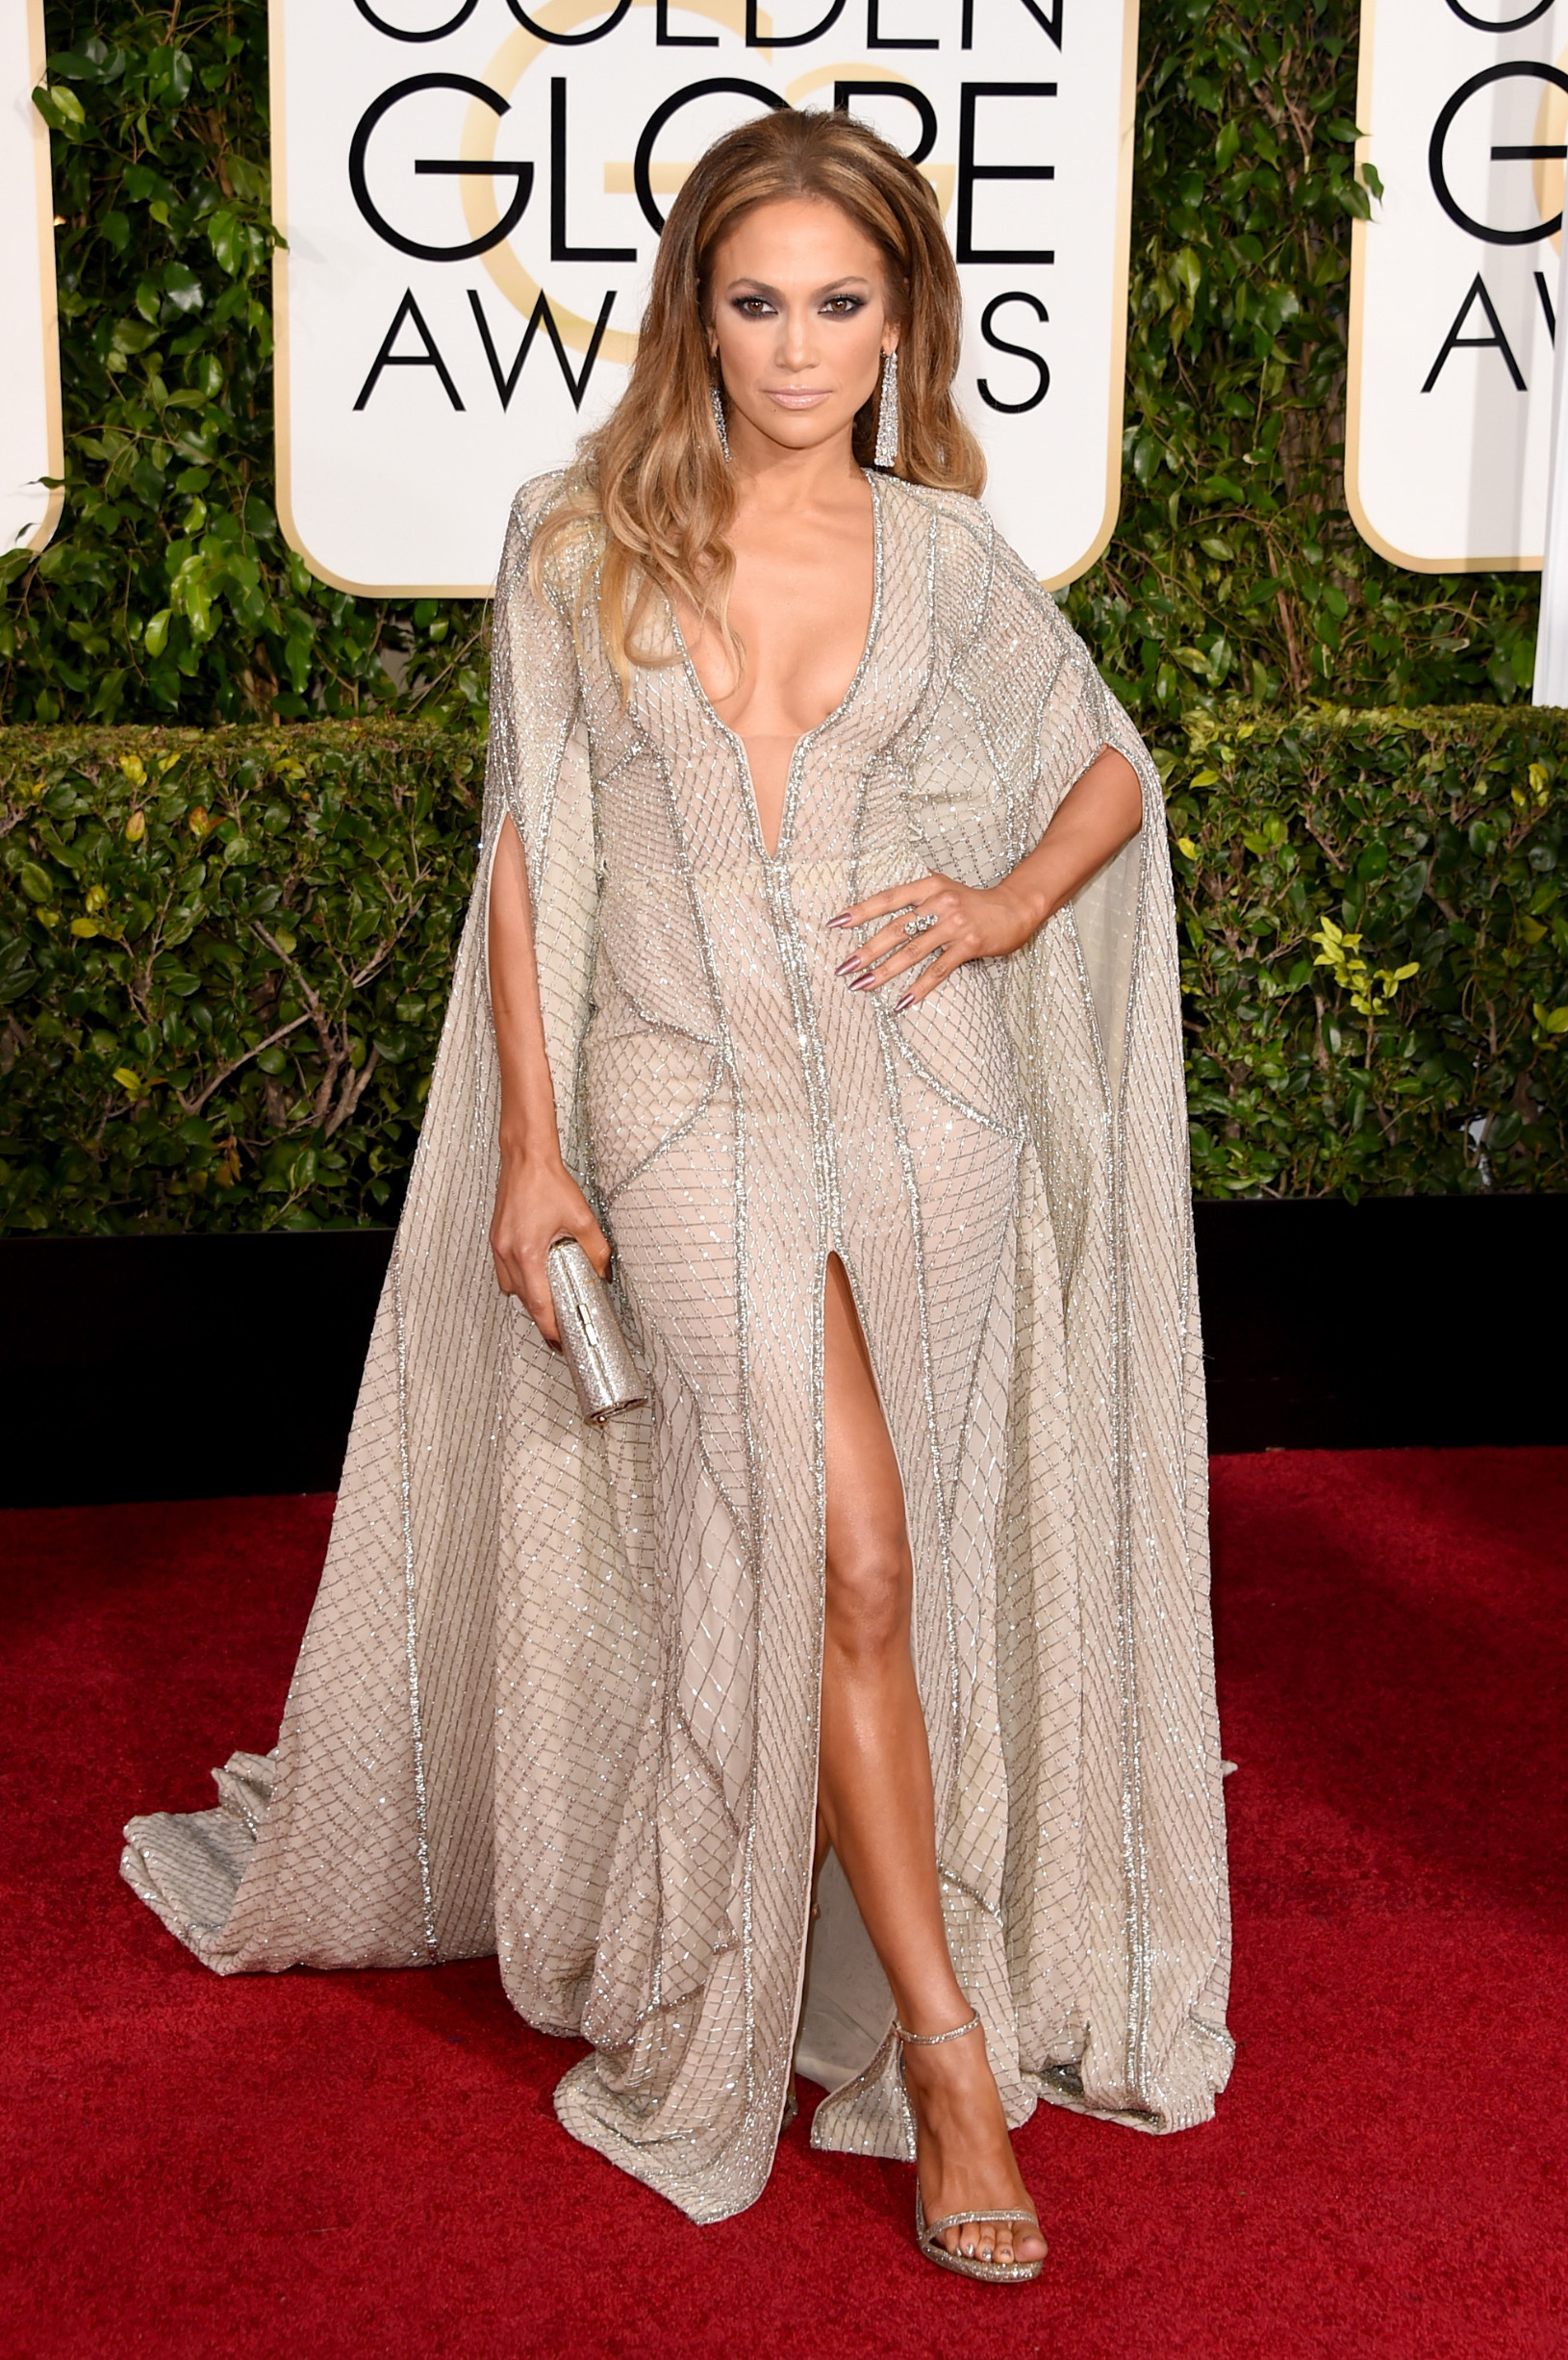 BEVERLY HILLS, CA - JANUARY 11: Actress Jennifer Lopez attends the 72nd Annual Golden Globe Awards at The Beverly Hilton Hotel on January 11, 2015 in Beverly Hills, California.  (Photo by Jason Merritt/Getty Images)